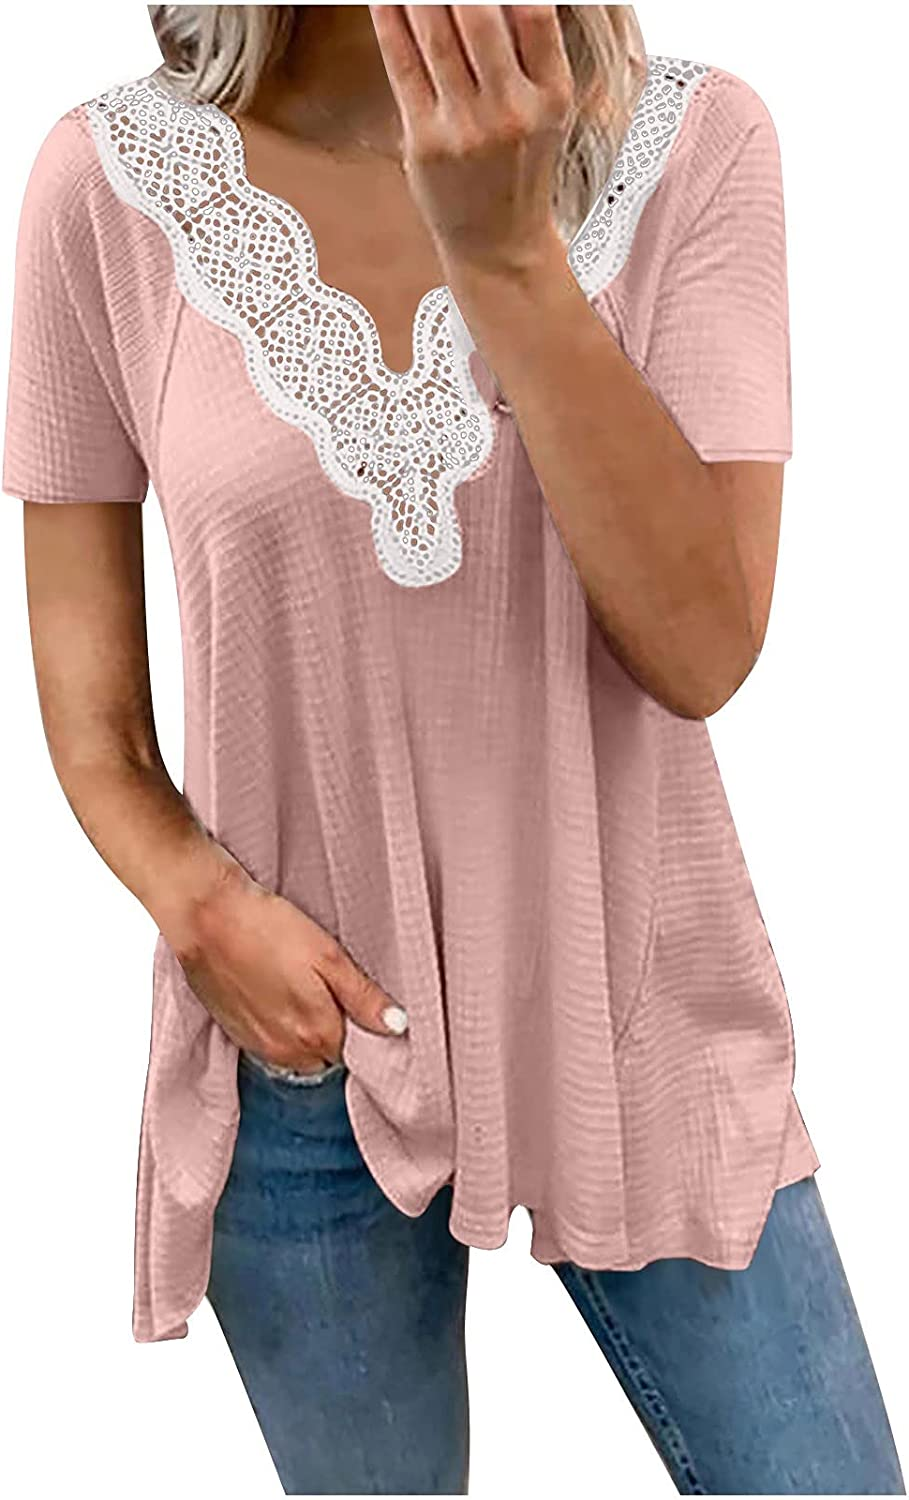 Women's Casual Solid Waffle Top V Neck Short Sleeve Lace Blouse T Shirts